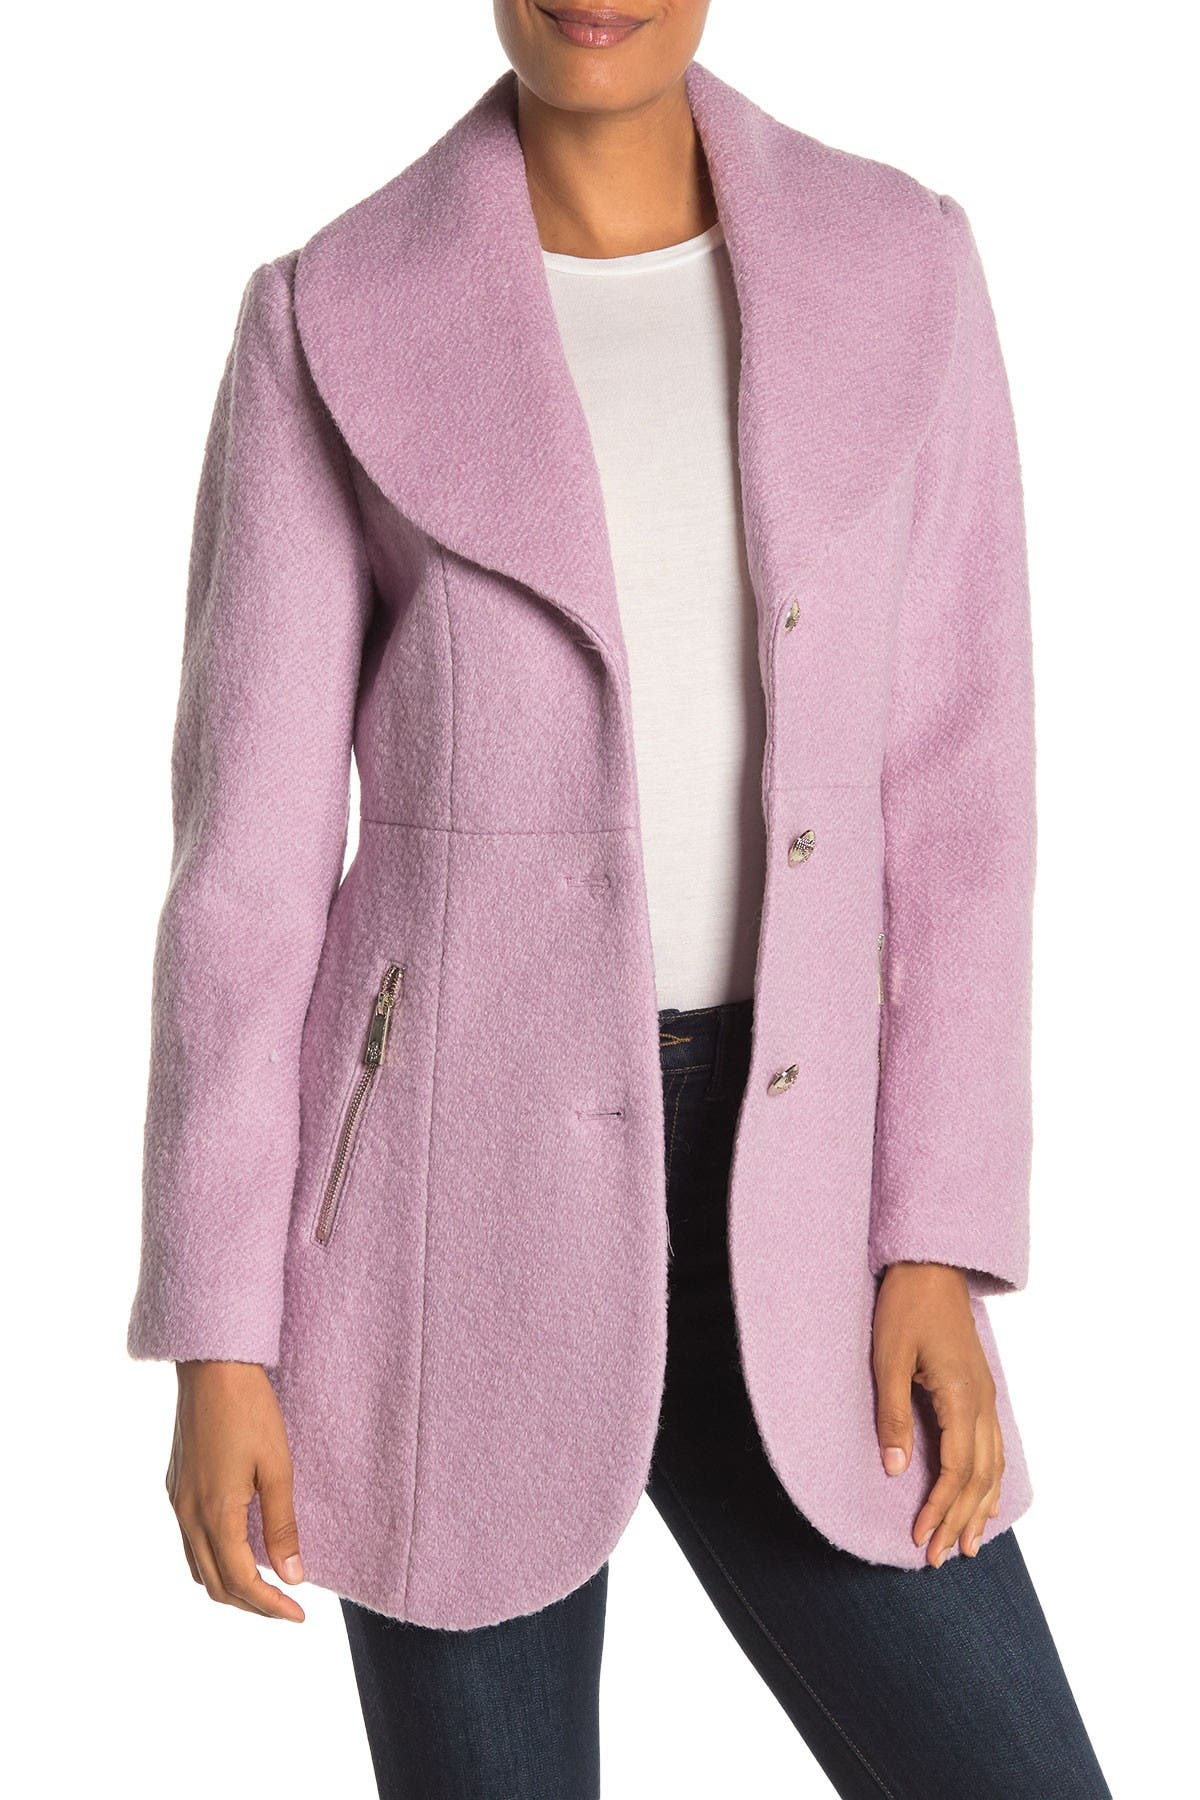 Image of GUESS Shawl Collar Wool Blend Coat